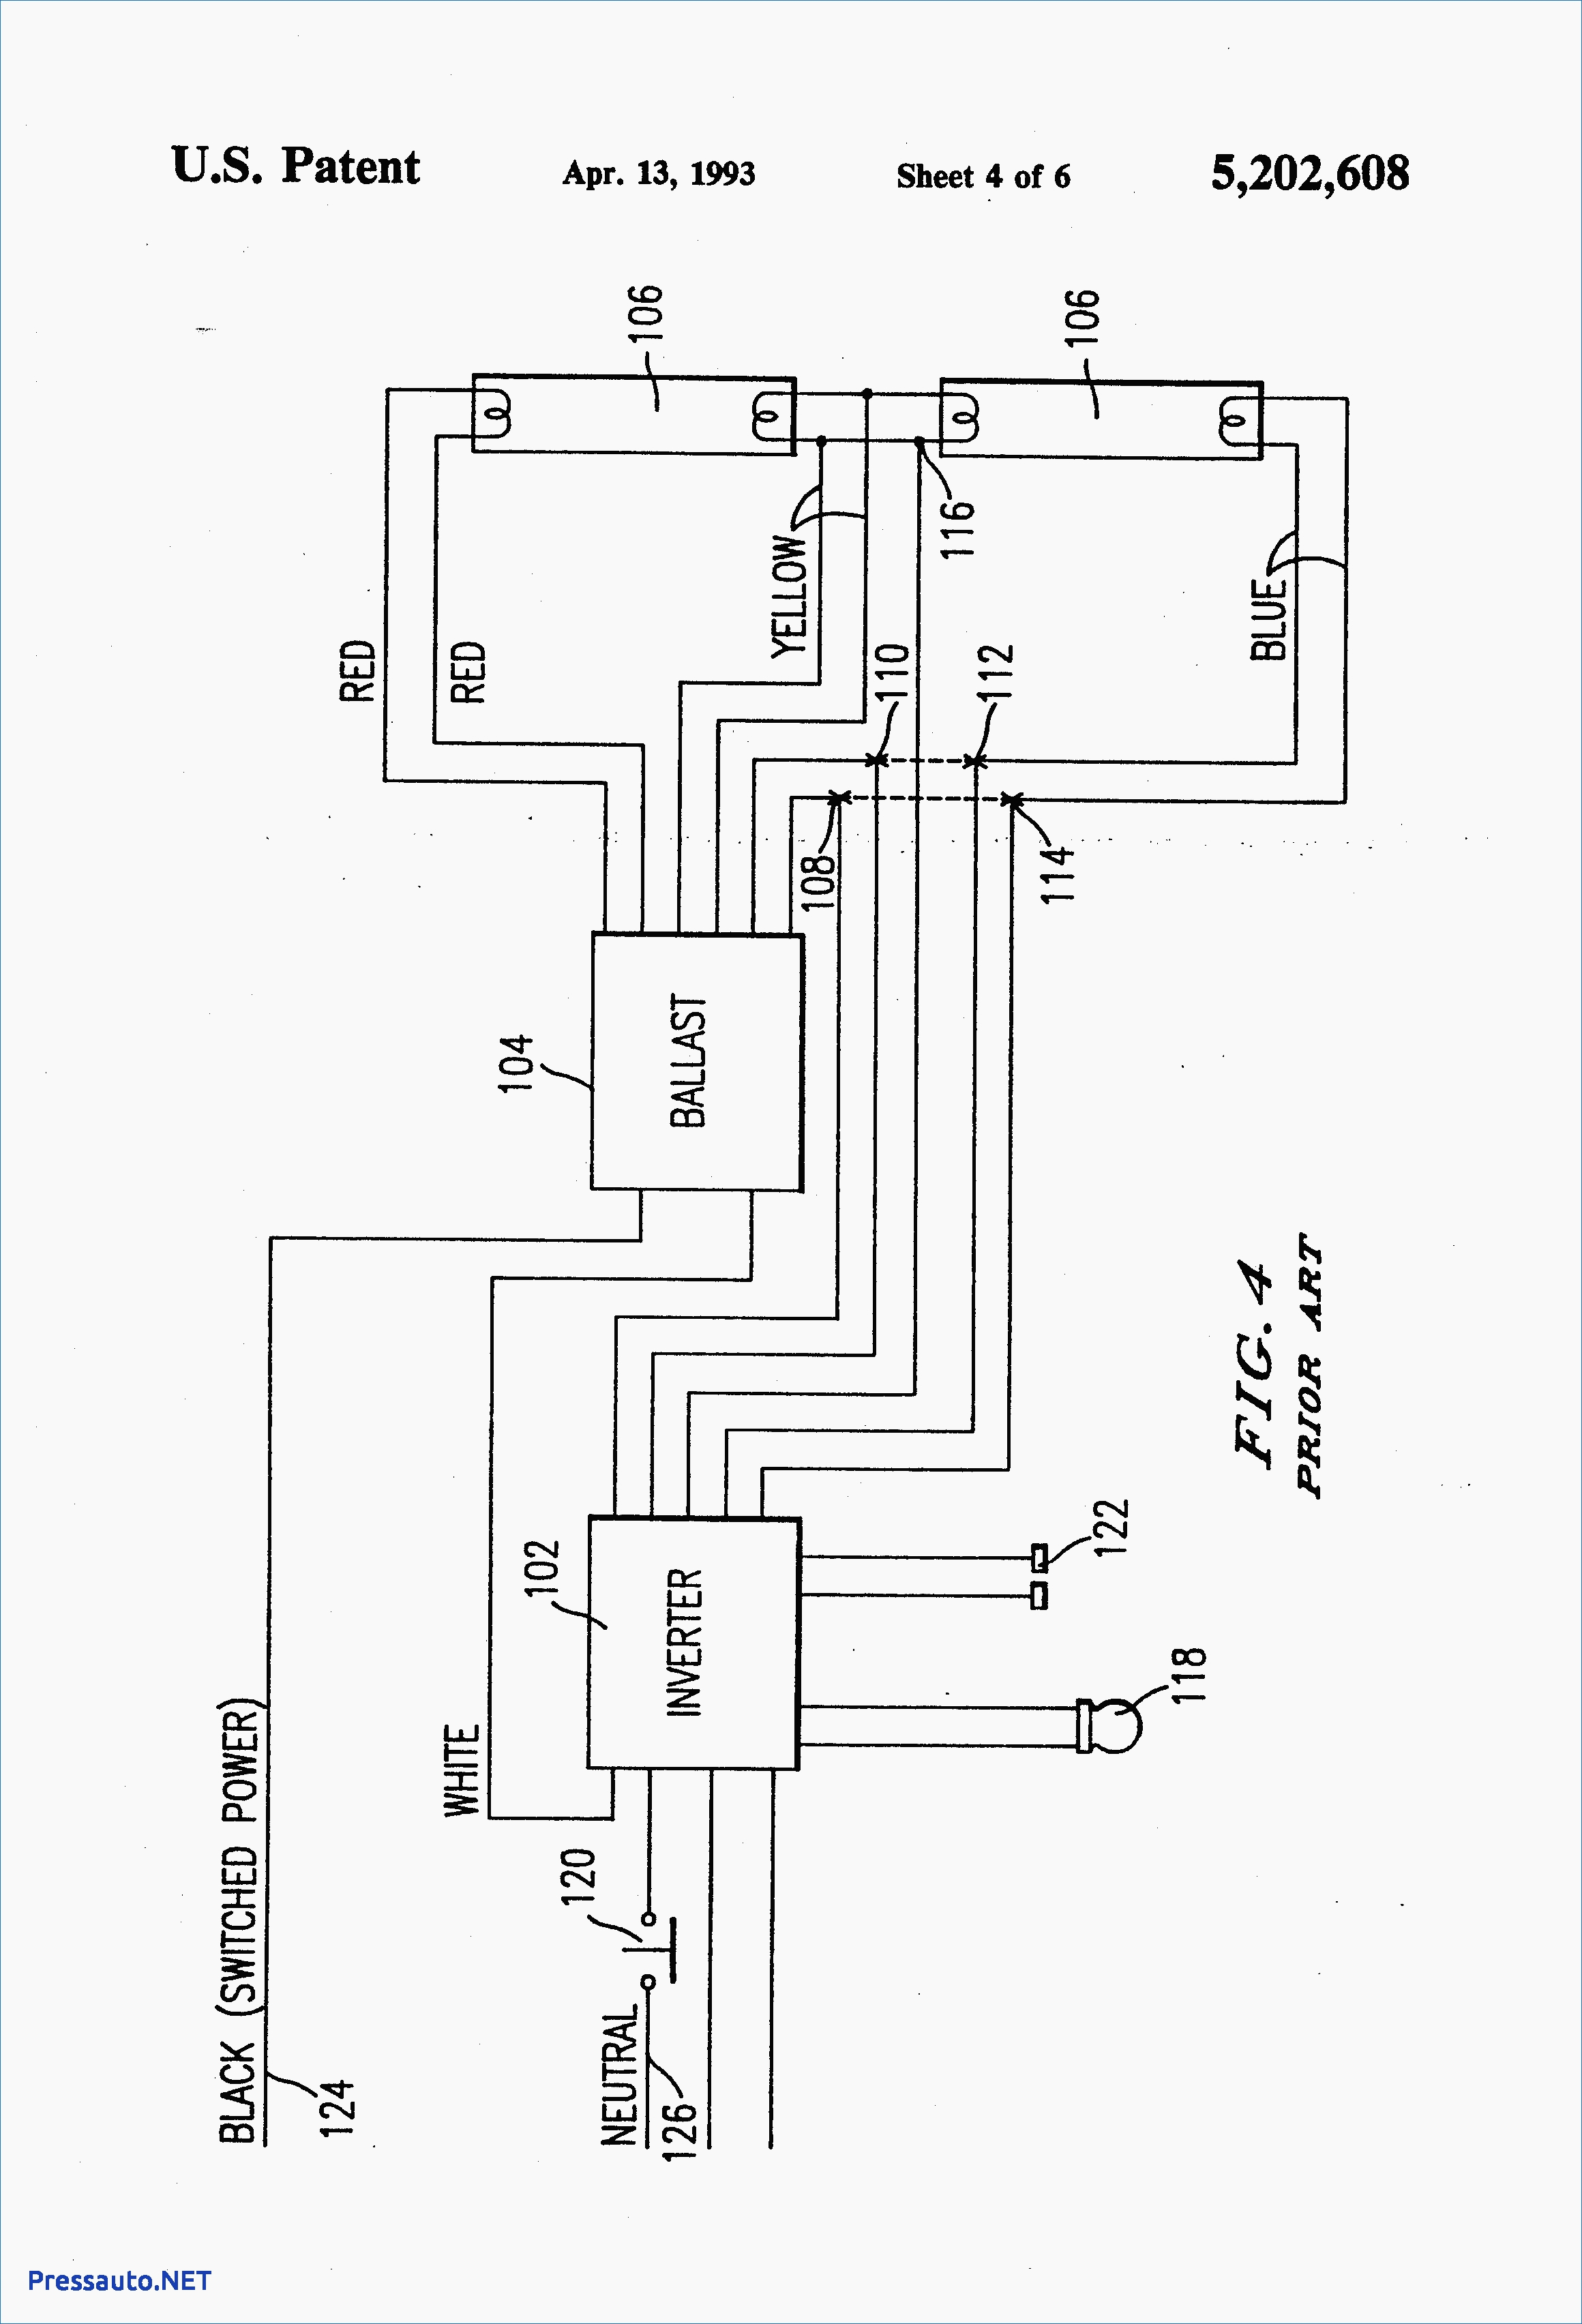 diagram] lighting contactor ballast wiring diagrams full version hd quality wiring  diagrams - tsa15hwiring.concessionariabelogisenigallia.it  concessionariabelogisenigallia.it